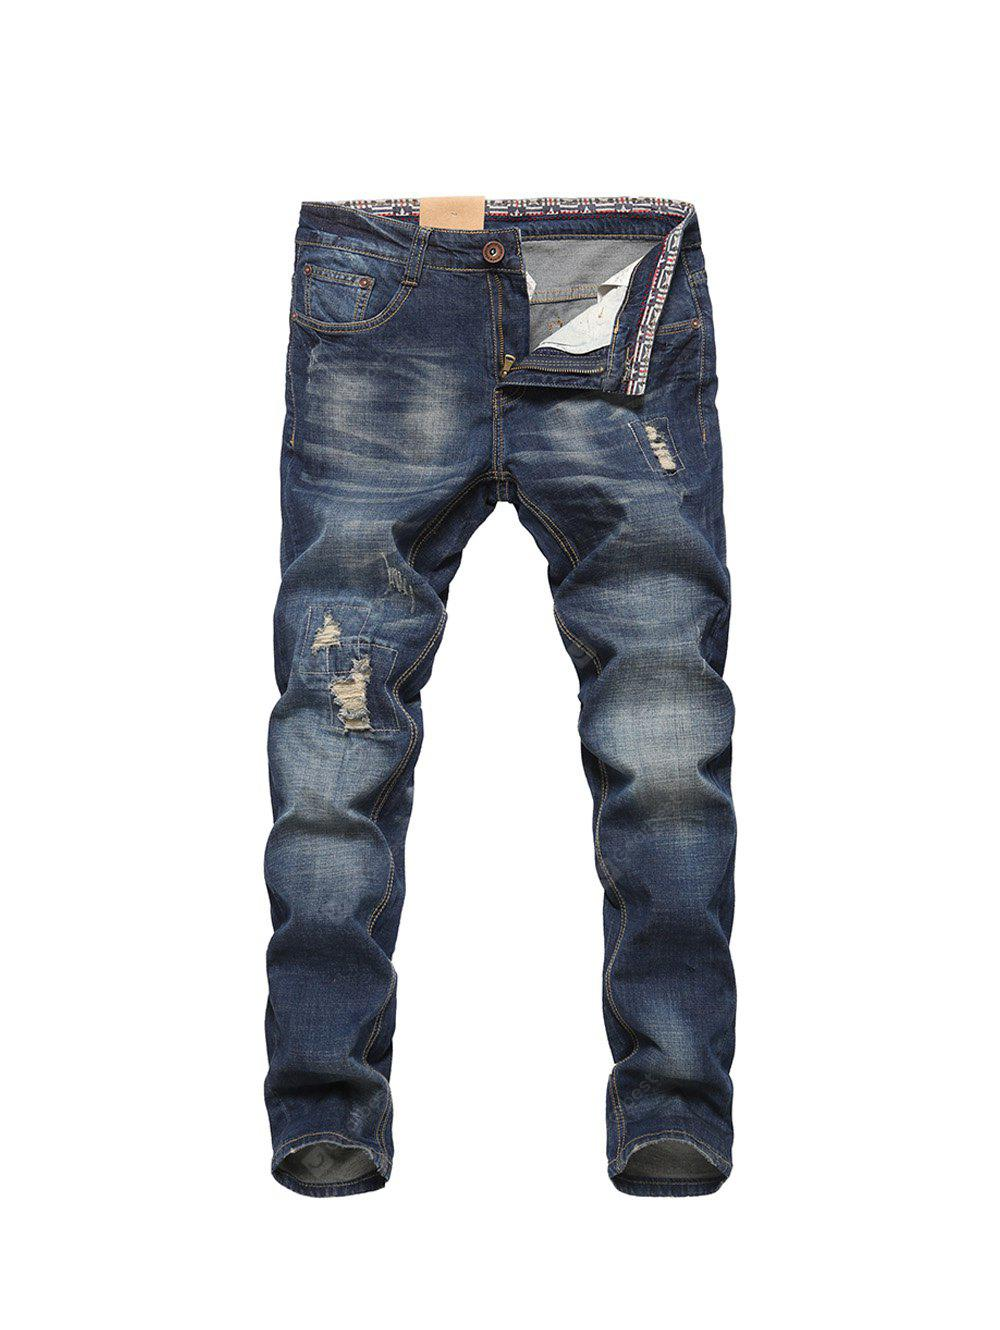 Male Fashionable Straight Zipper Fly Cotton Jeans